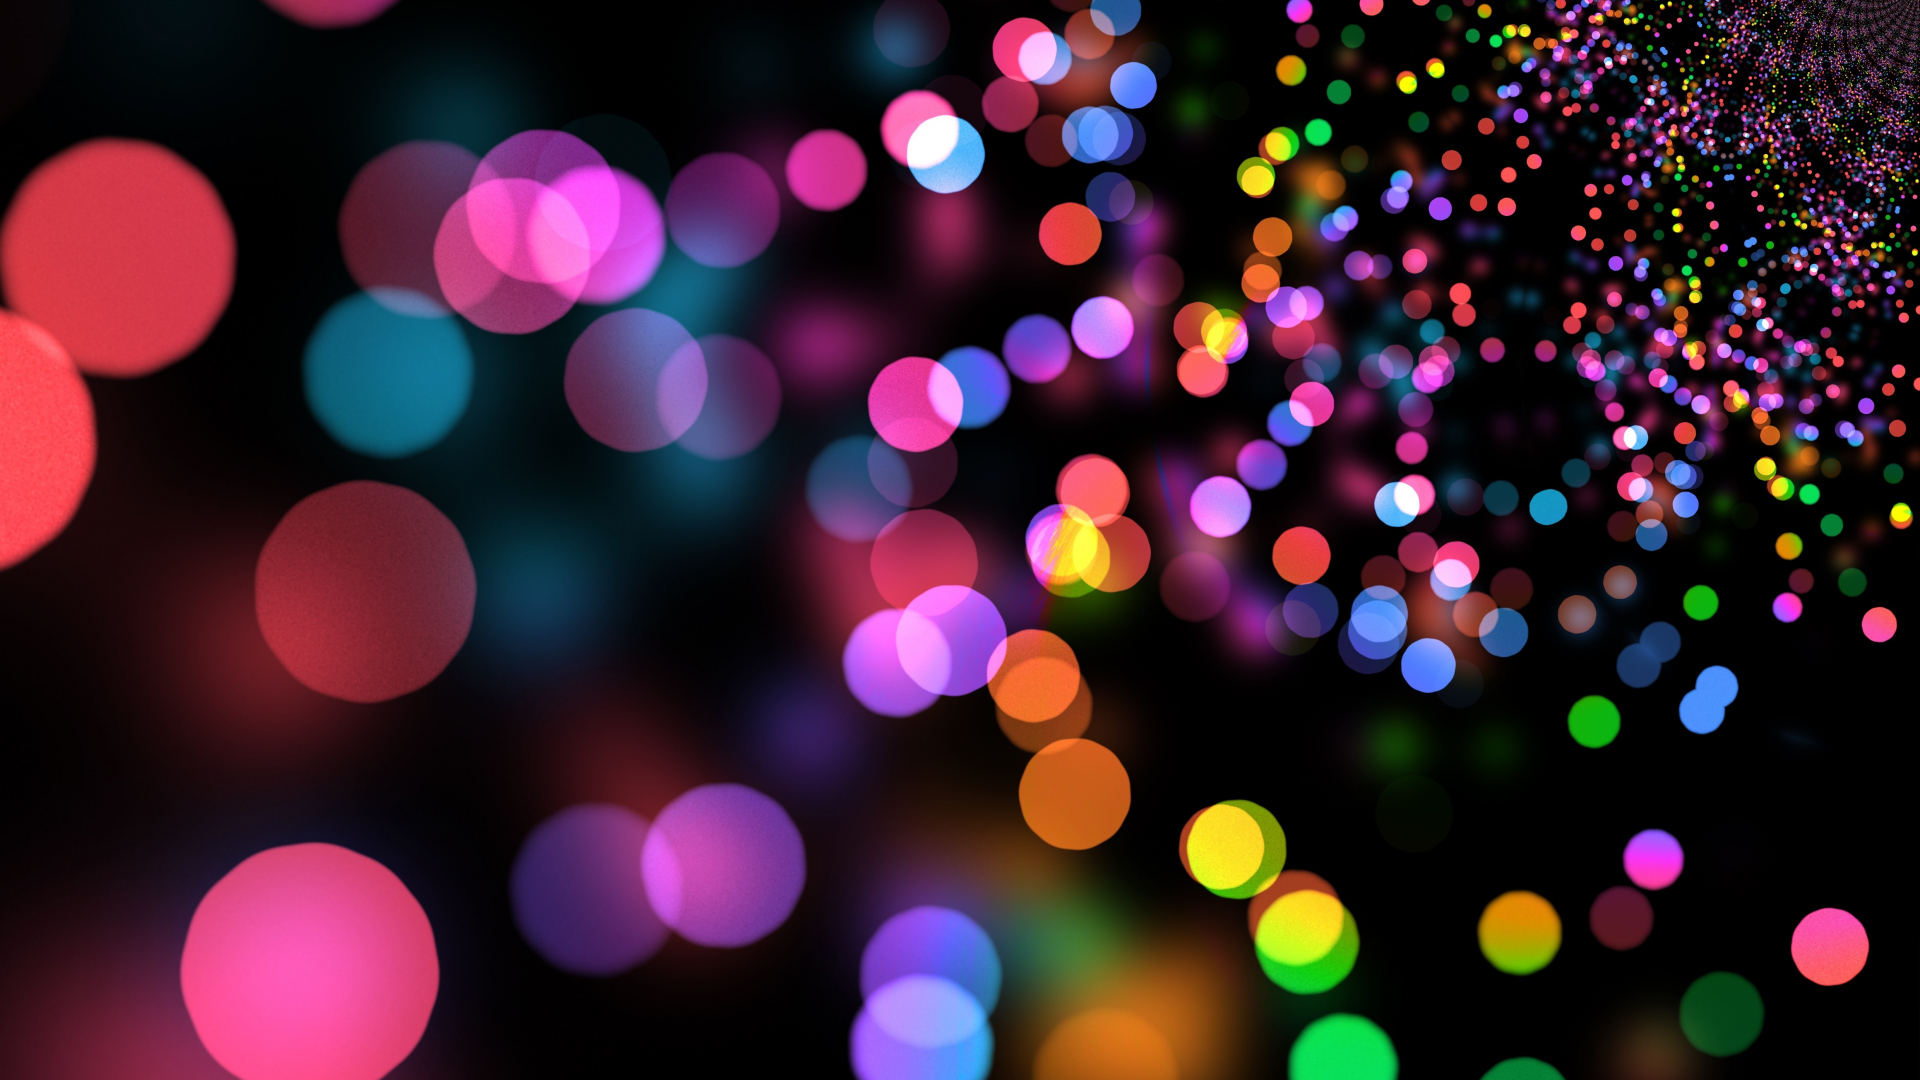 Wallpaper 4k Samsung Galaxy S8 Girls Download 1920x1080 Wallpaper Party Lights Circles